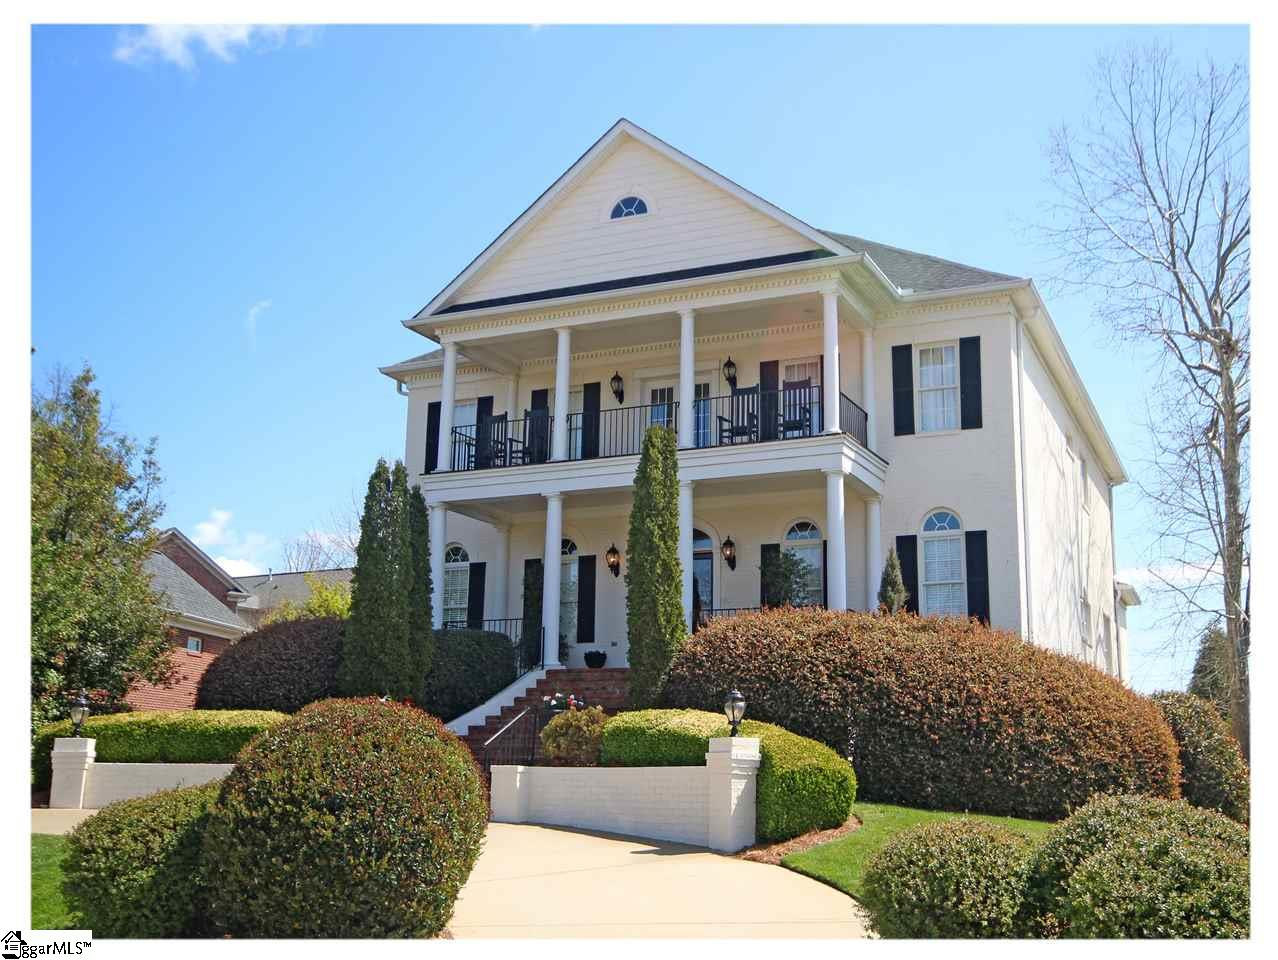 8 FARAWAY Place, Greenville, SC 29615